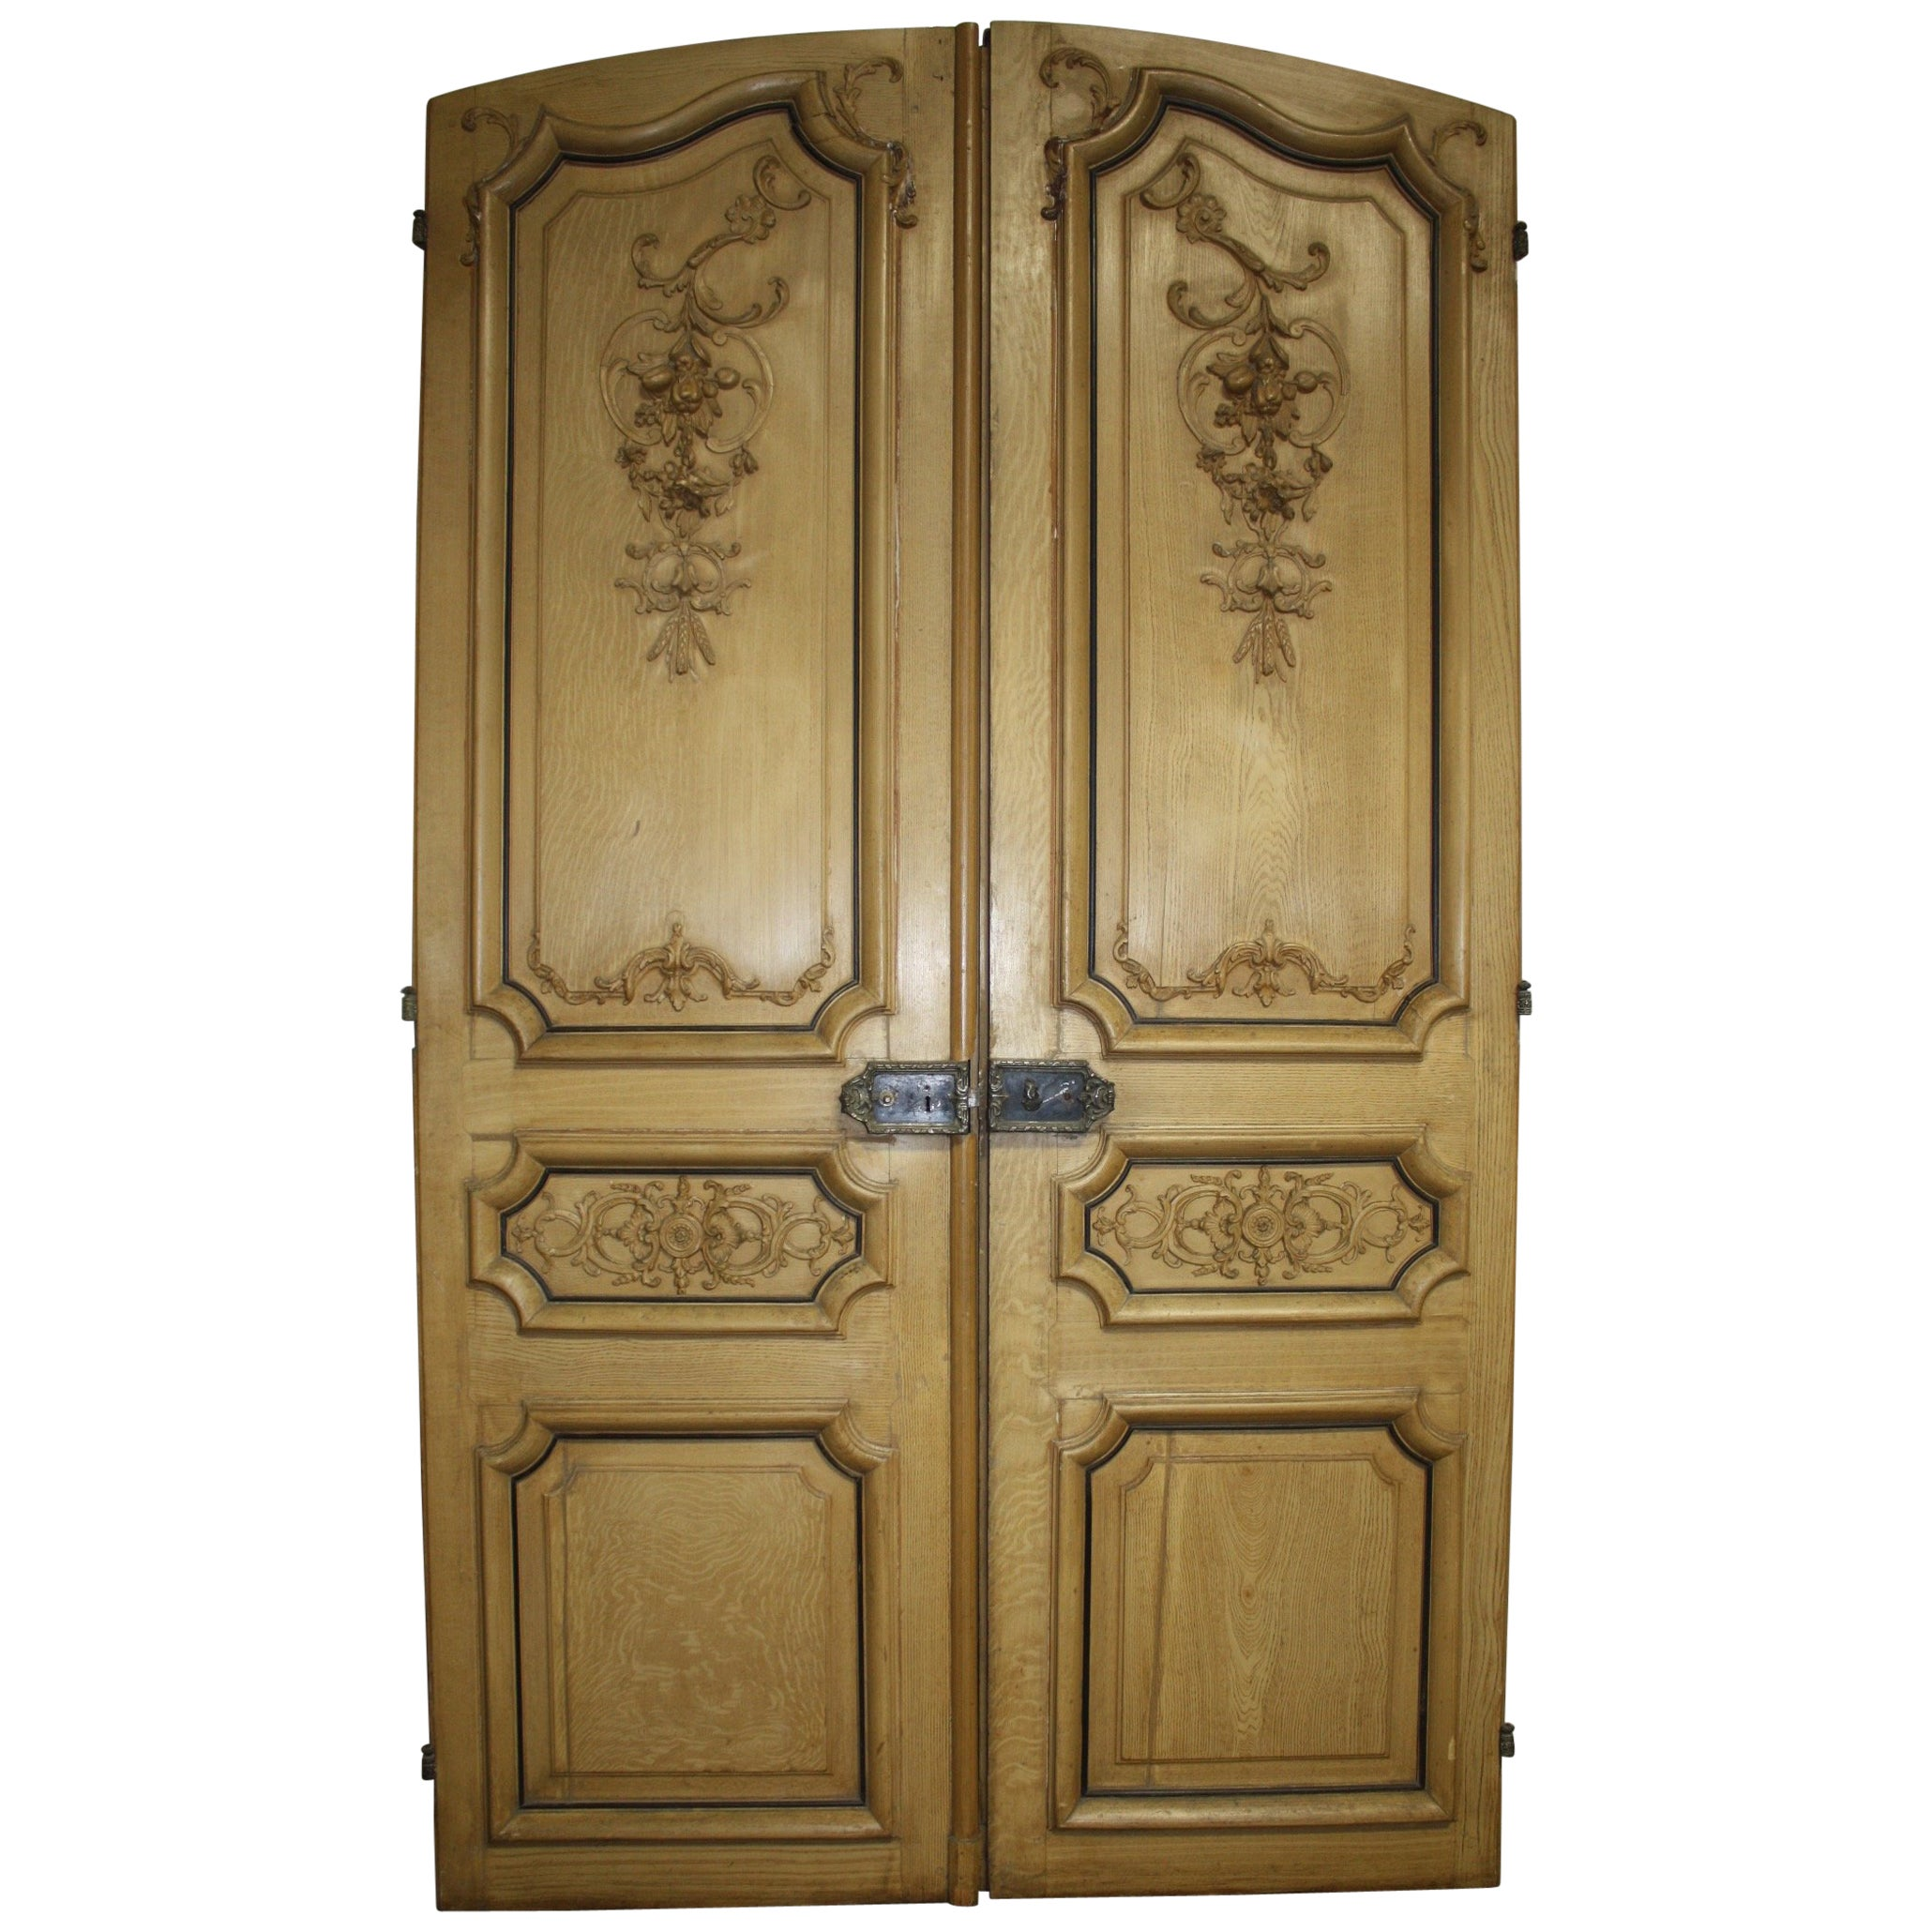 Magnificent Pair of 19th Century French Doors